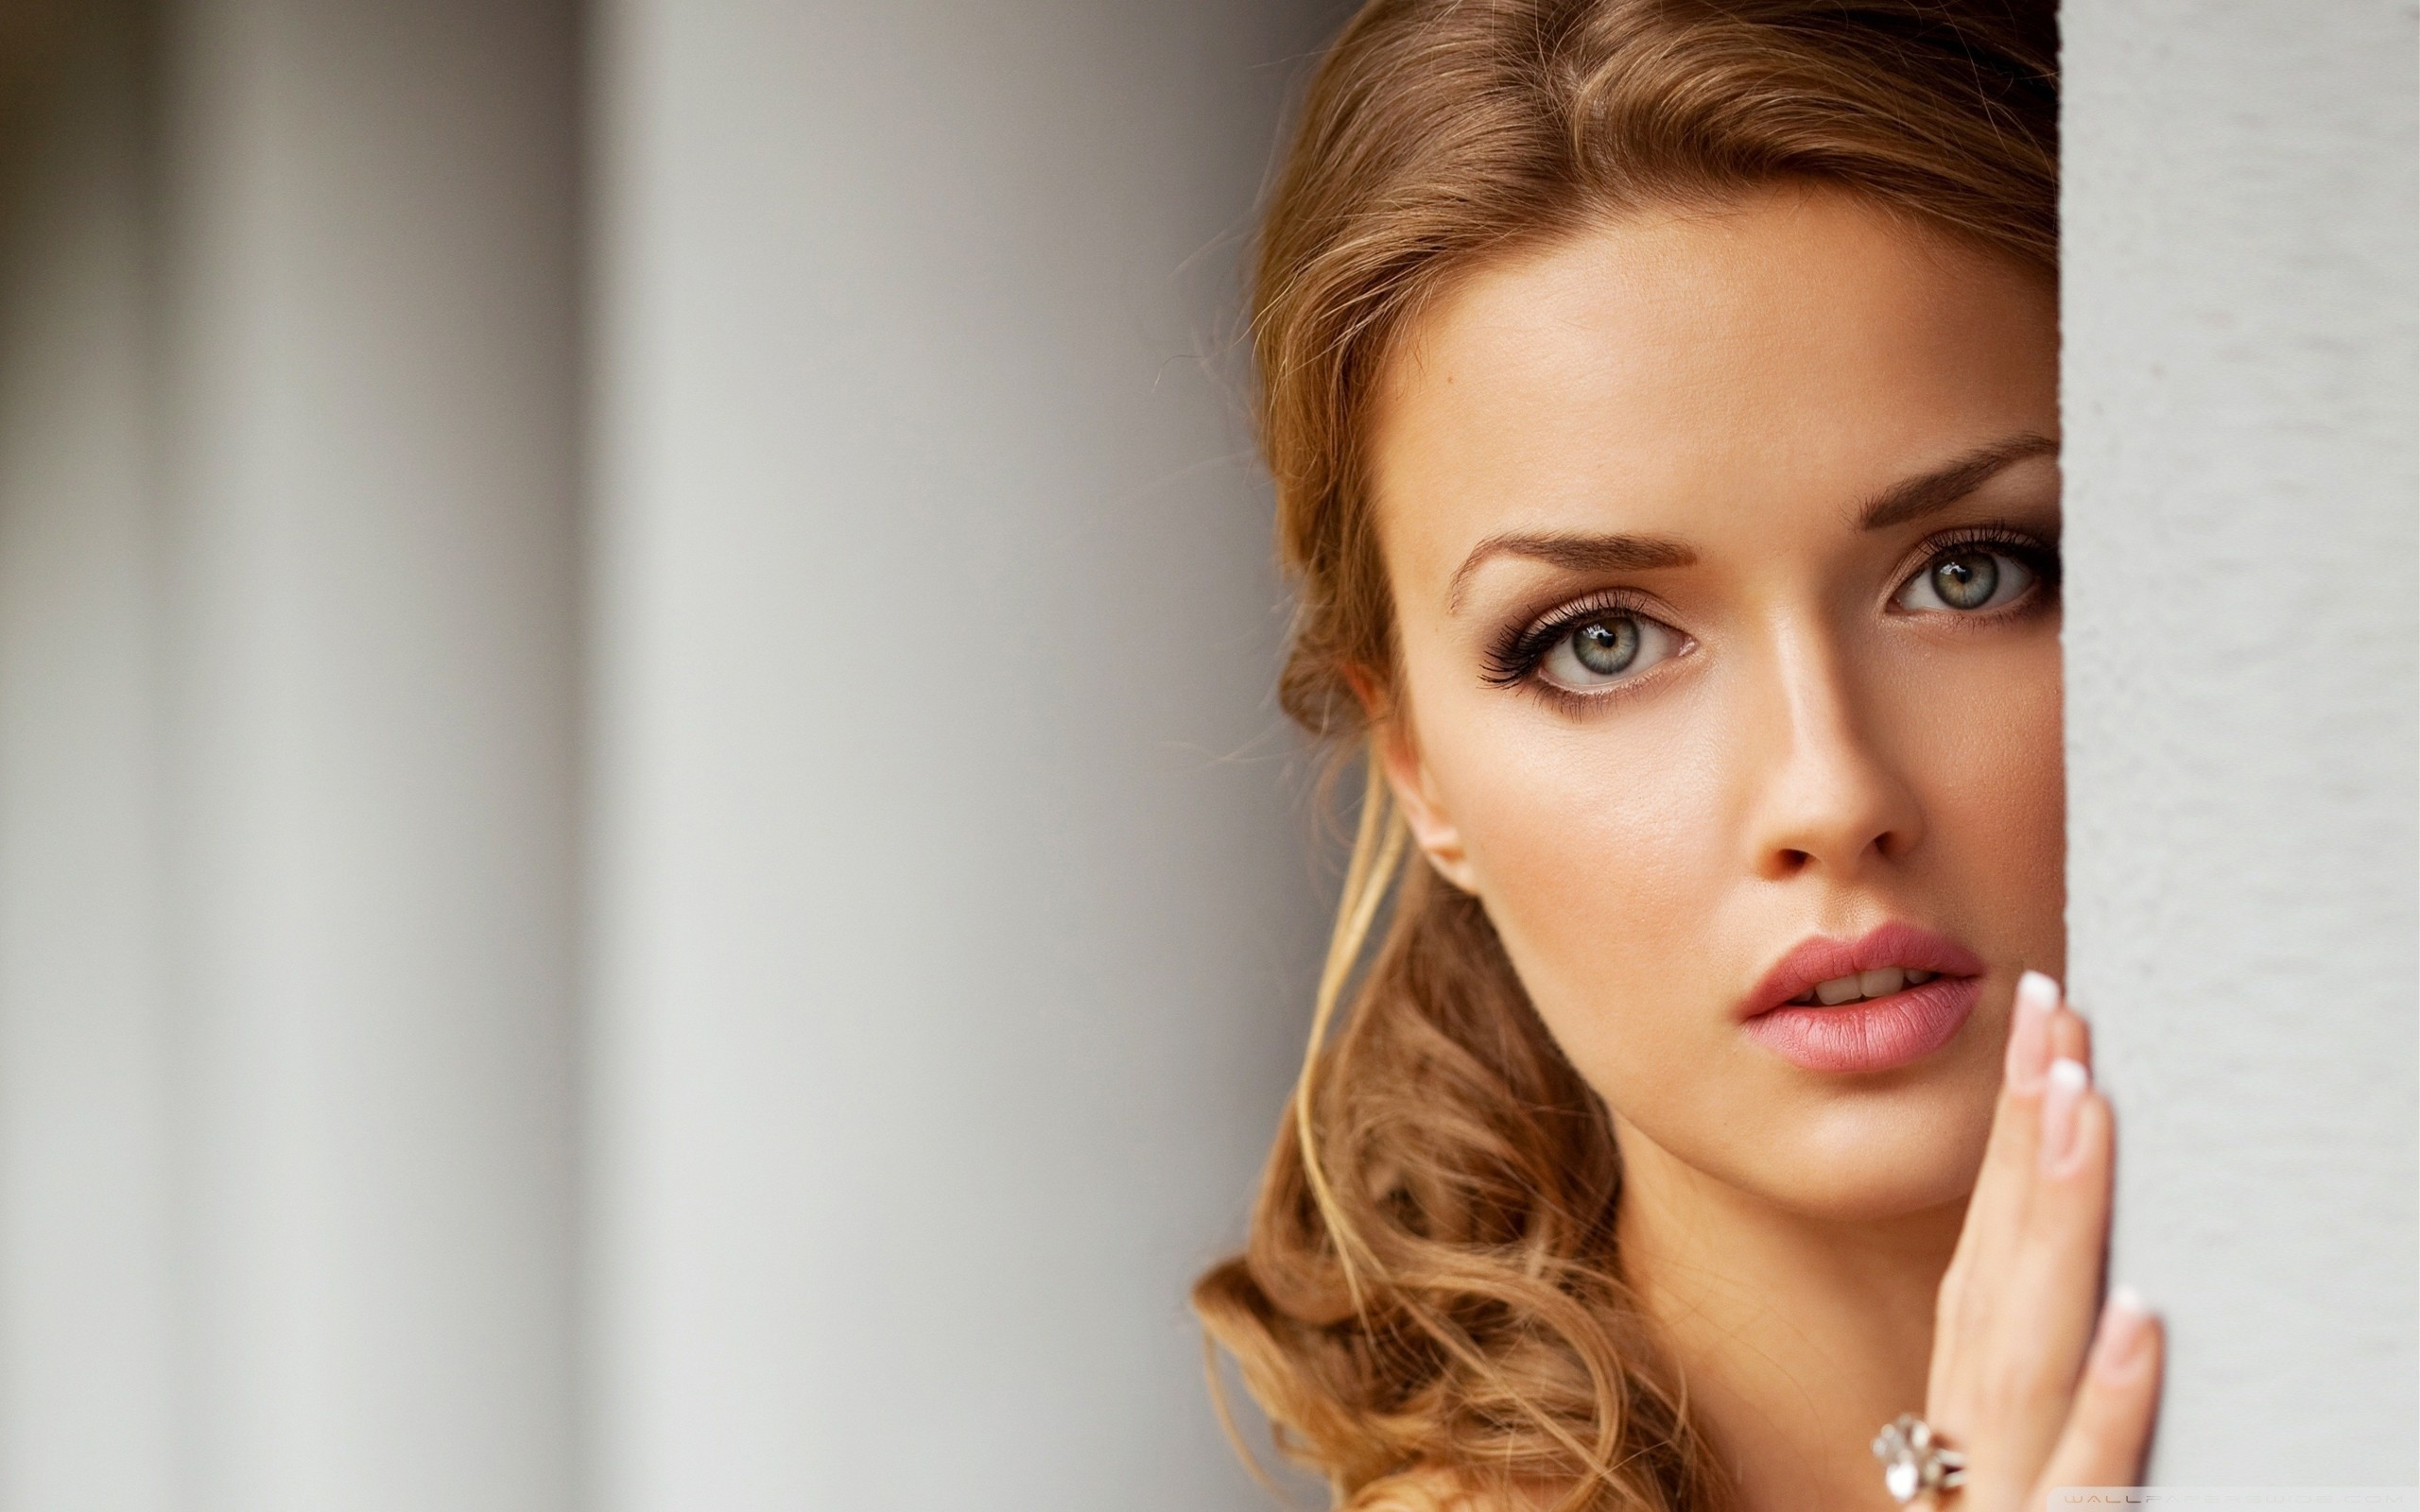 2560x1600 women most beautiful woman hd high definition 796283jpg